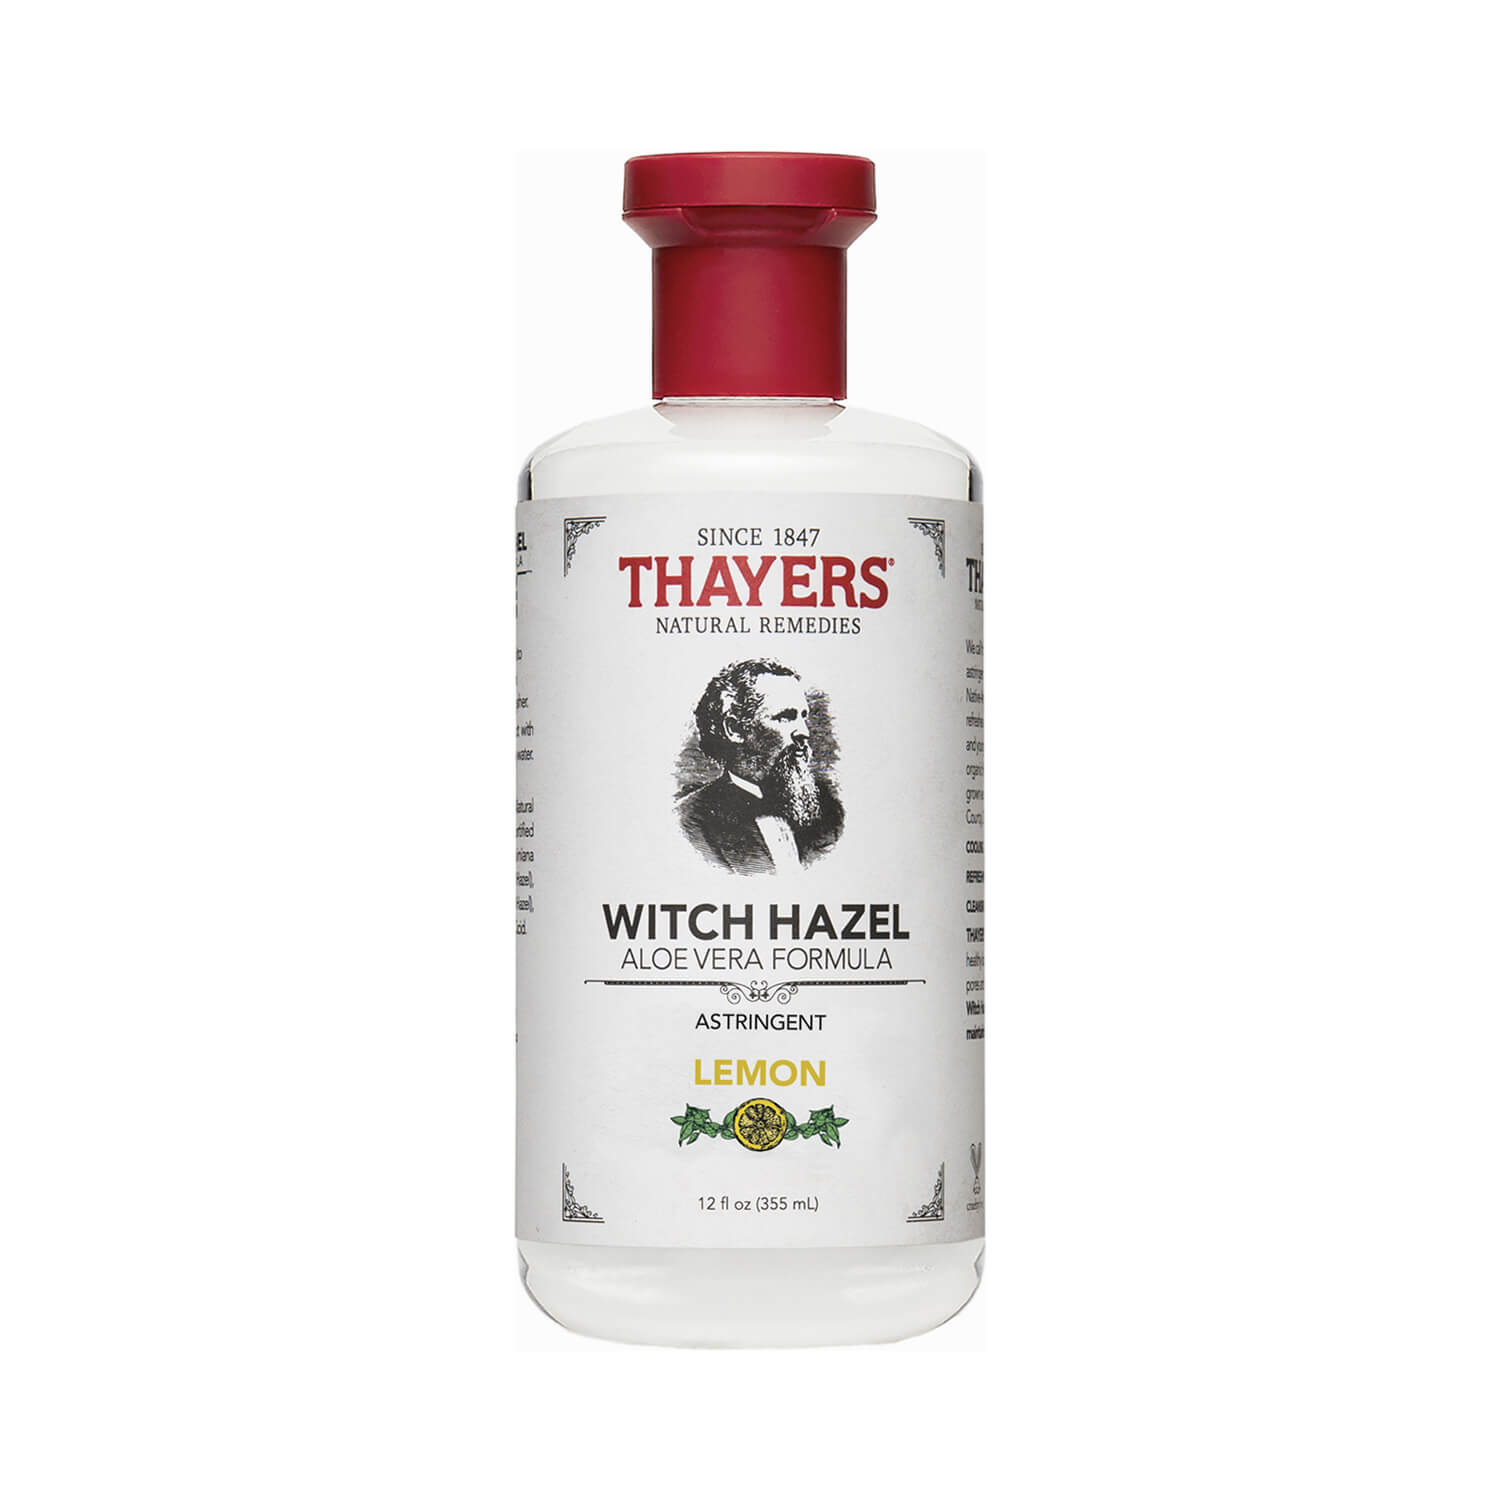 Thayers Lemon Witch Hazel Astringent